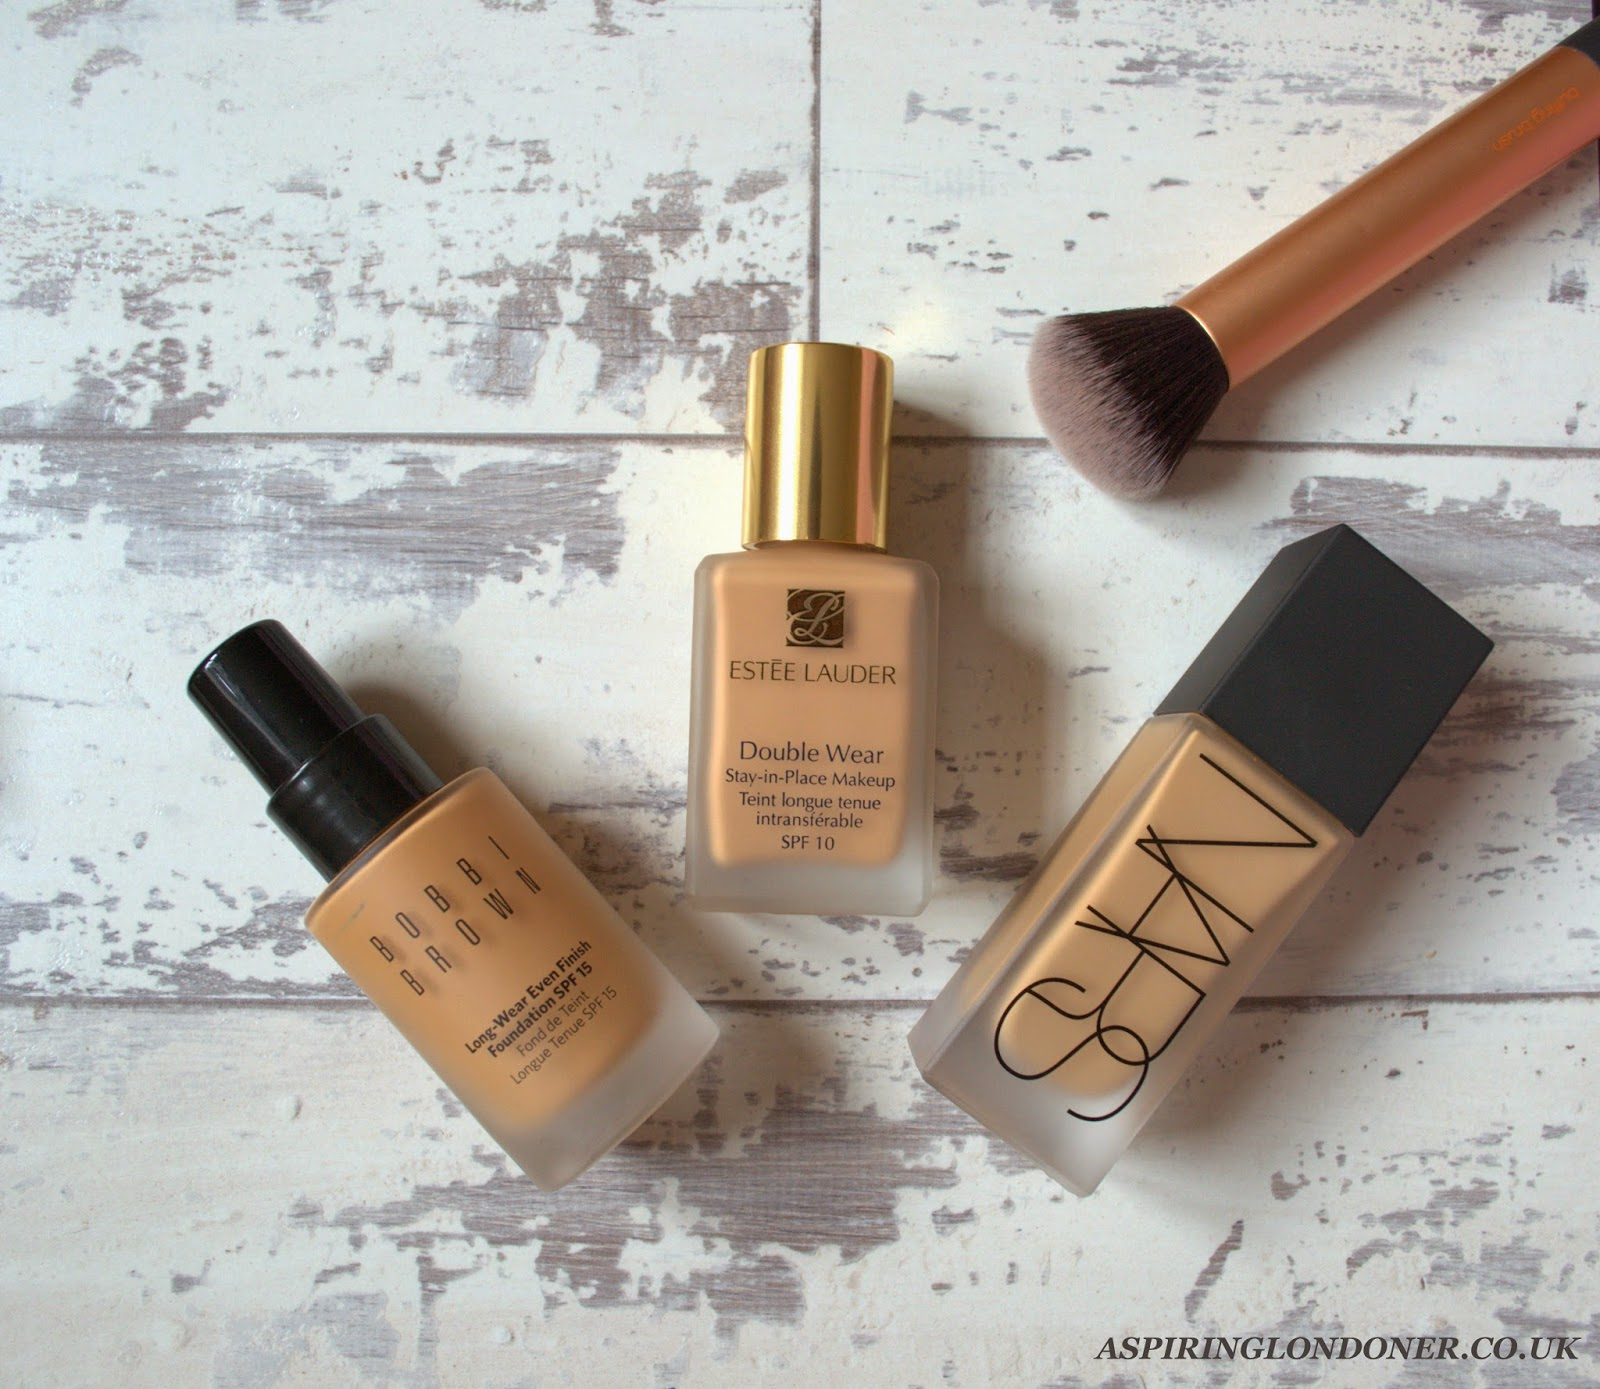 Best Foundations For Oily Combination Skin ft Nars, Bobbi Brown, Estee Lauder - Aspiring Londoner